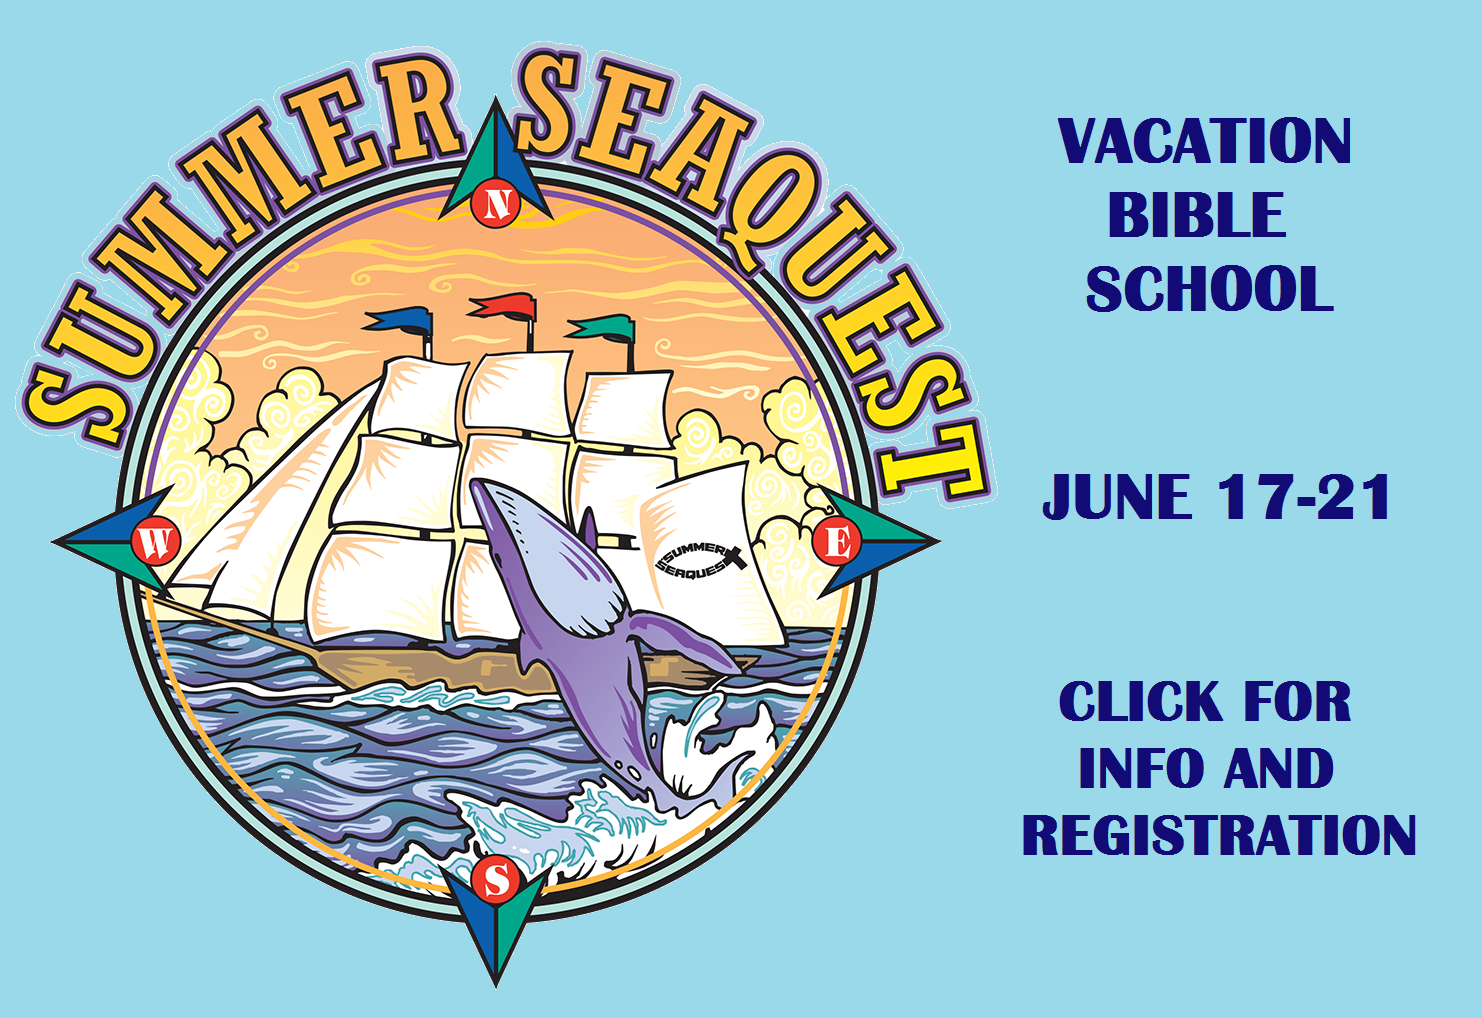 Summer SeaQuest VBS 2019